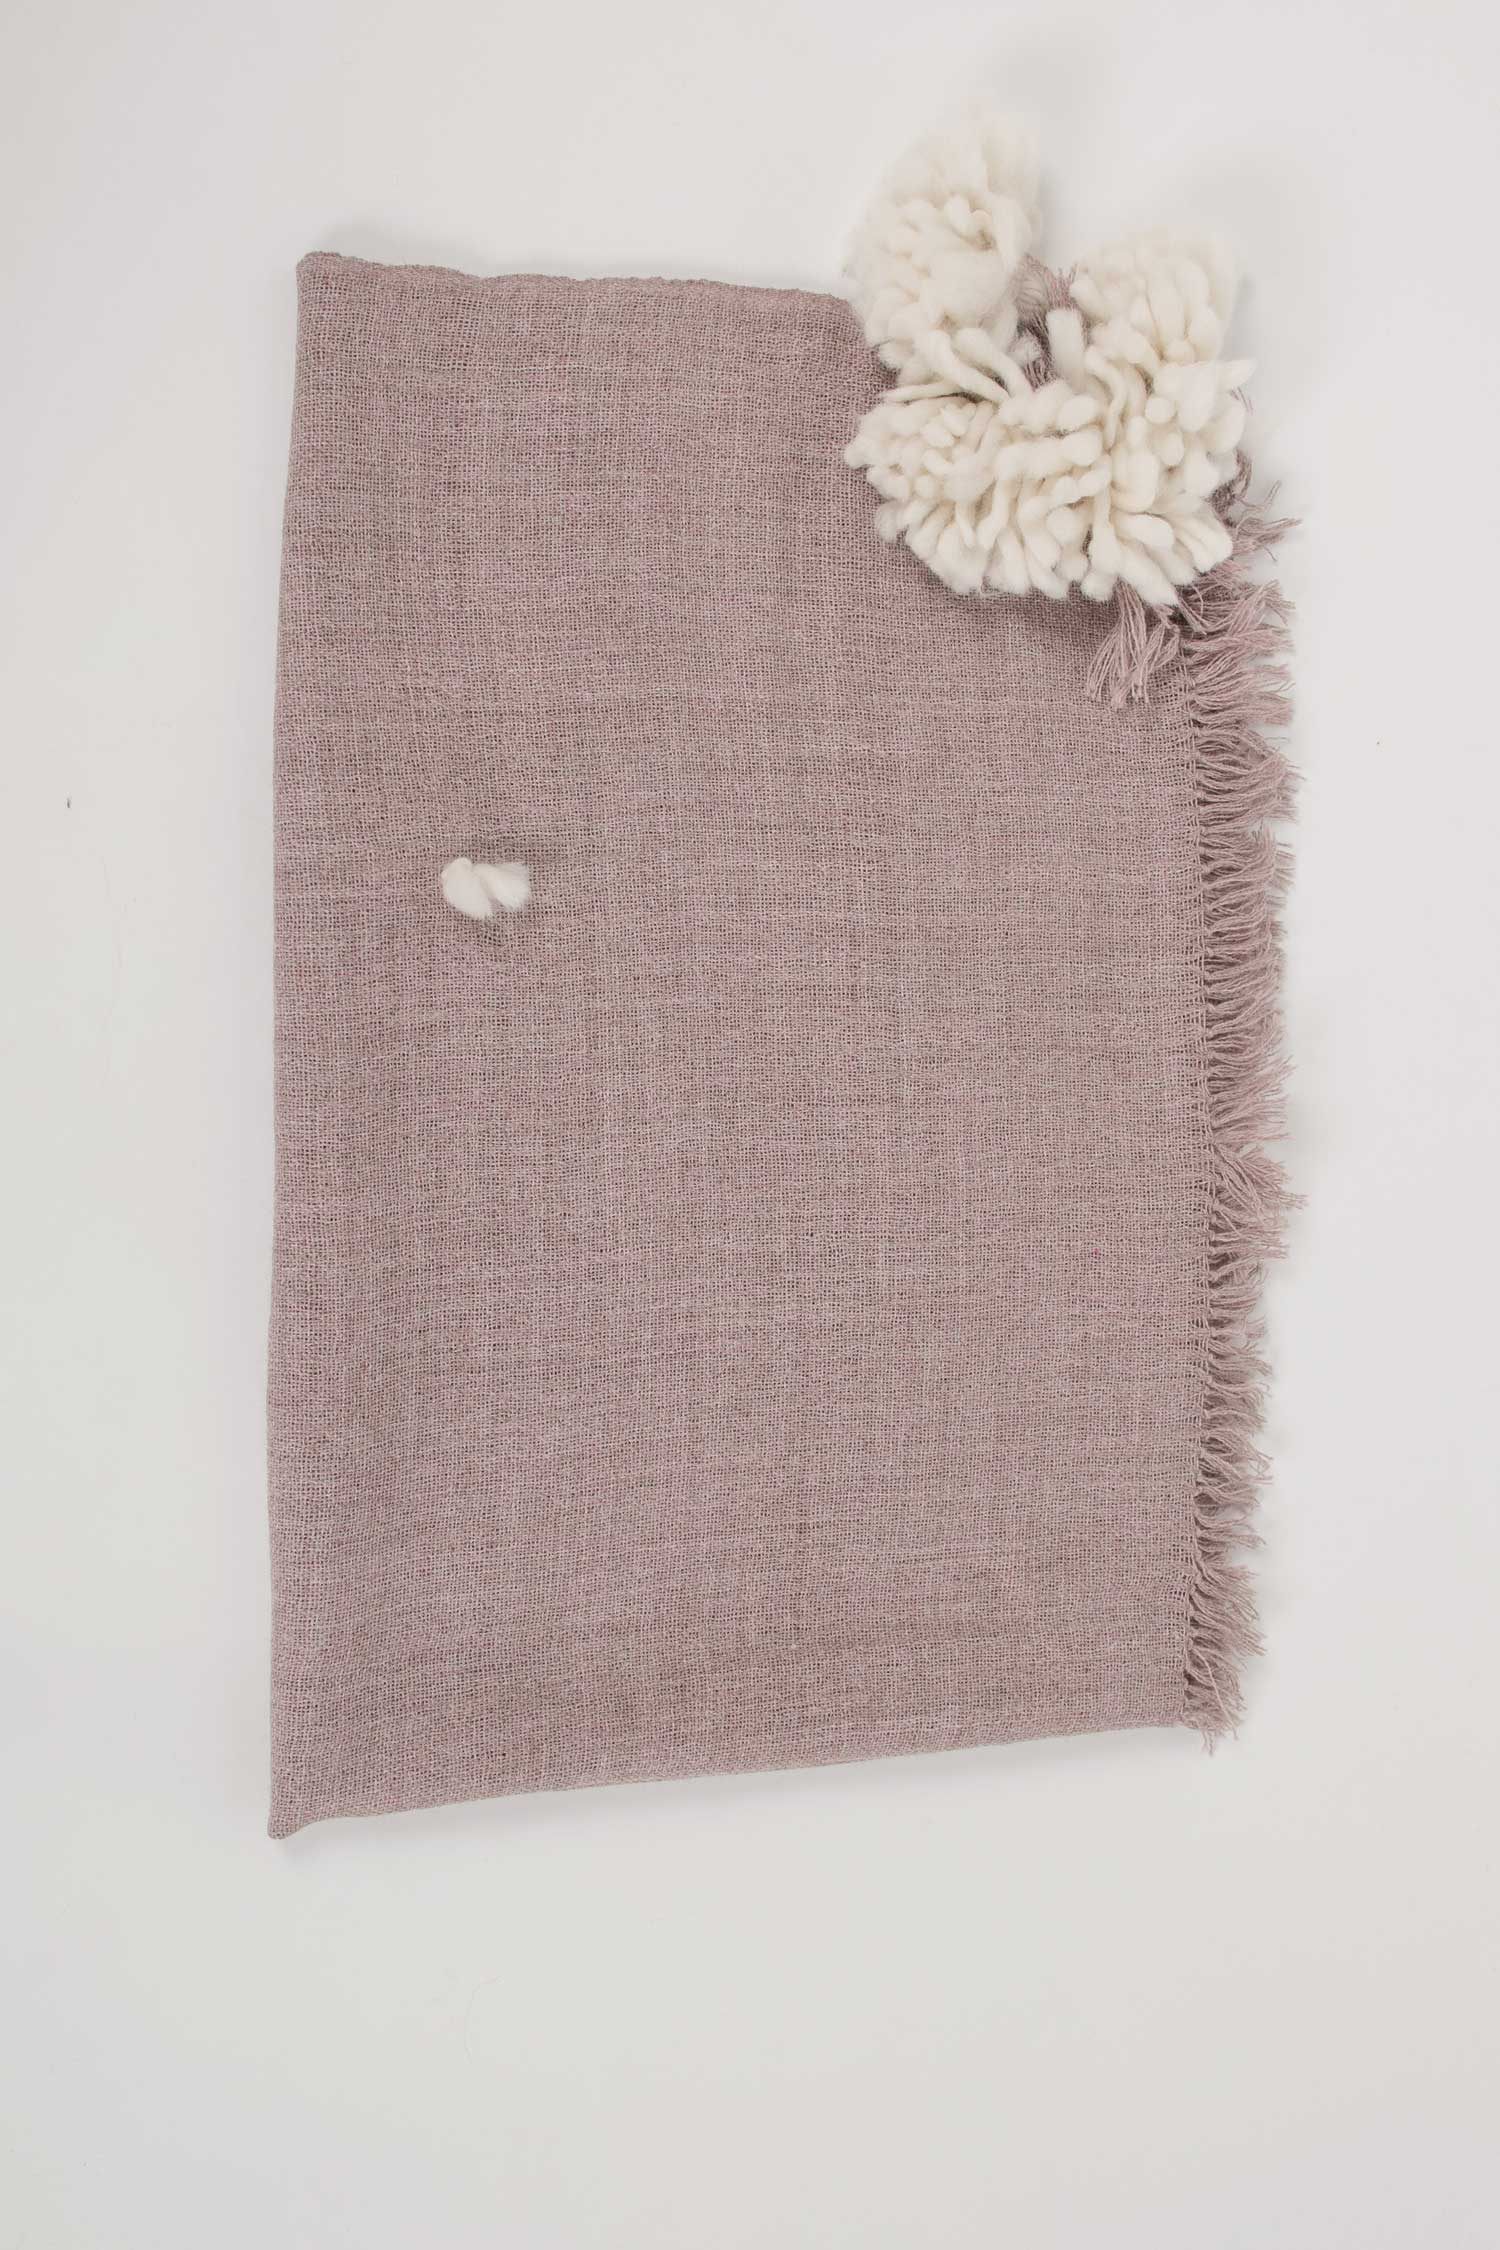 Soft Pink Alpaca Blanket | Sustainable Woven Alpaca Tassel Blanket